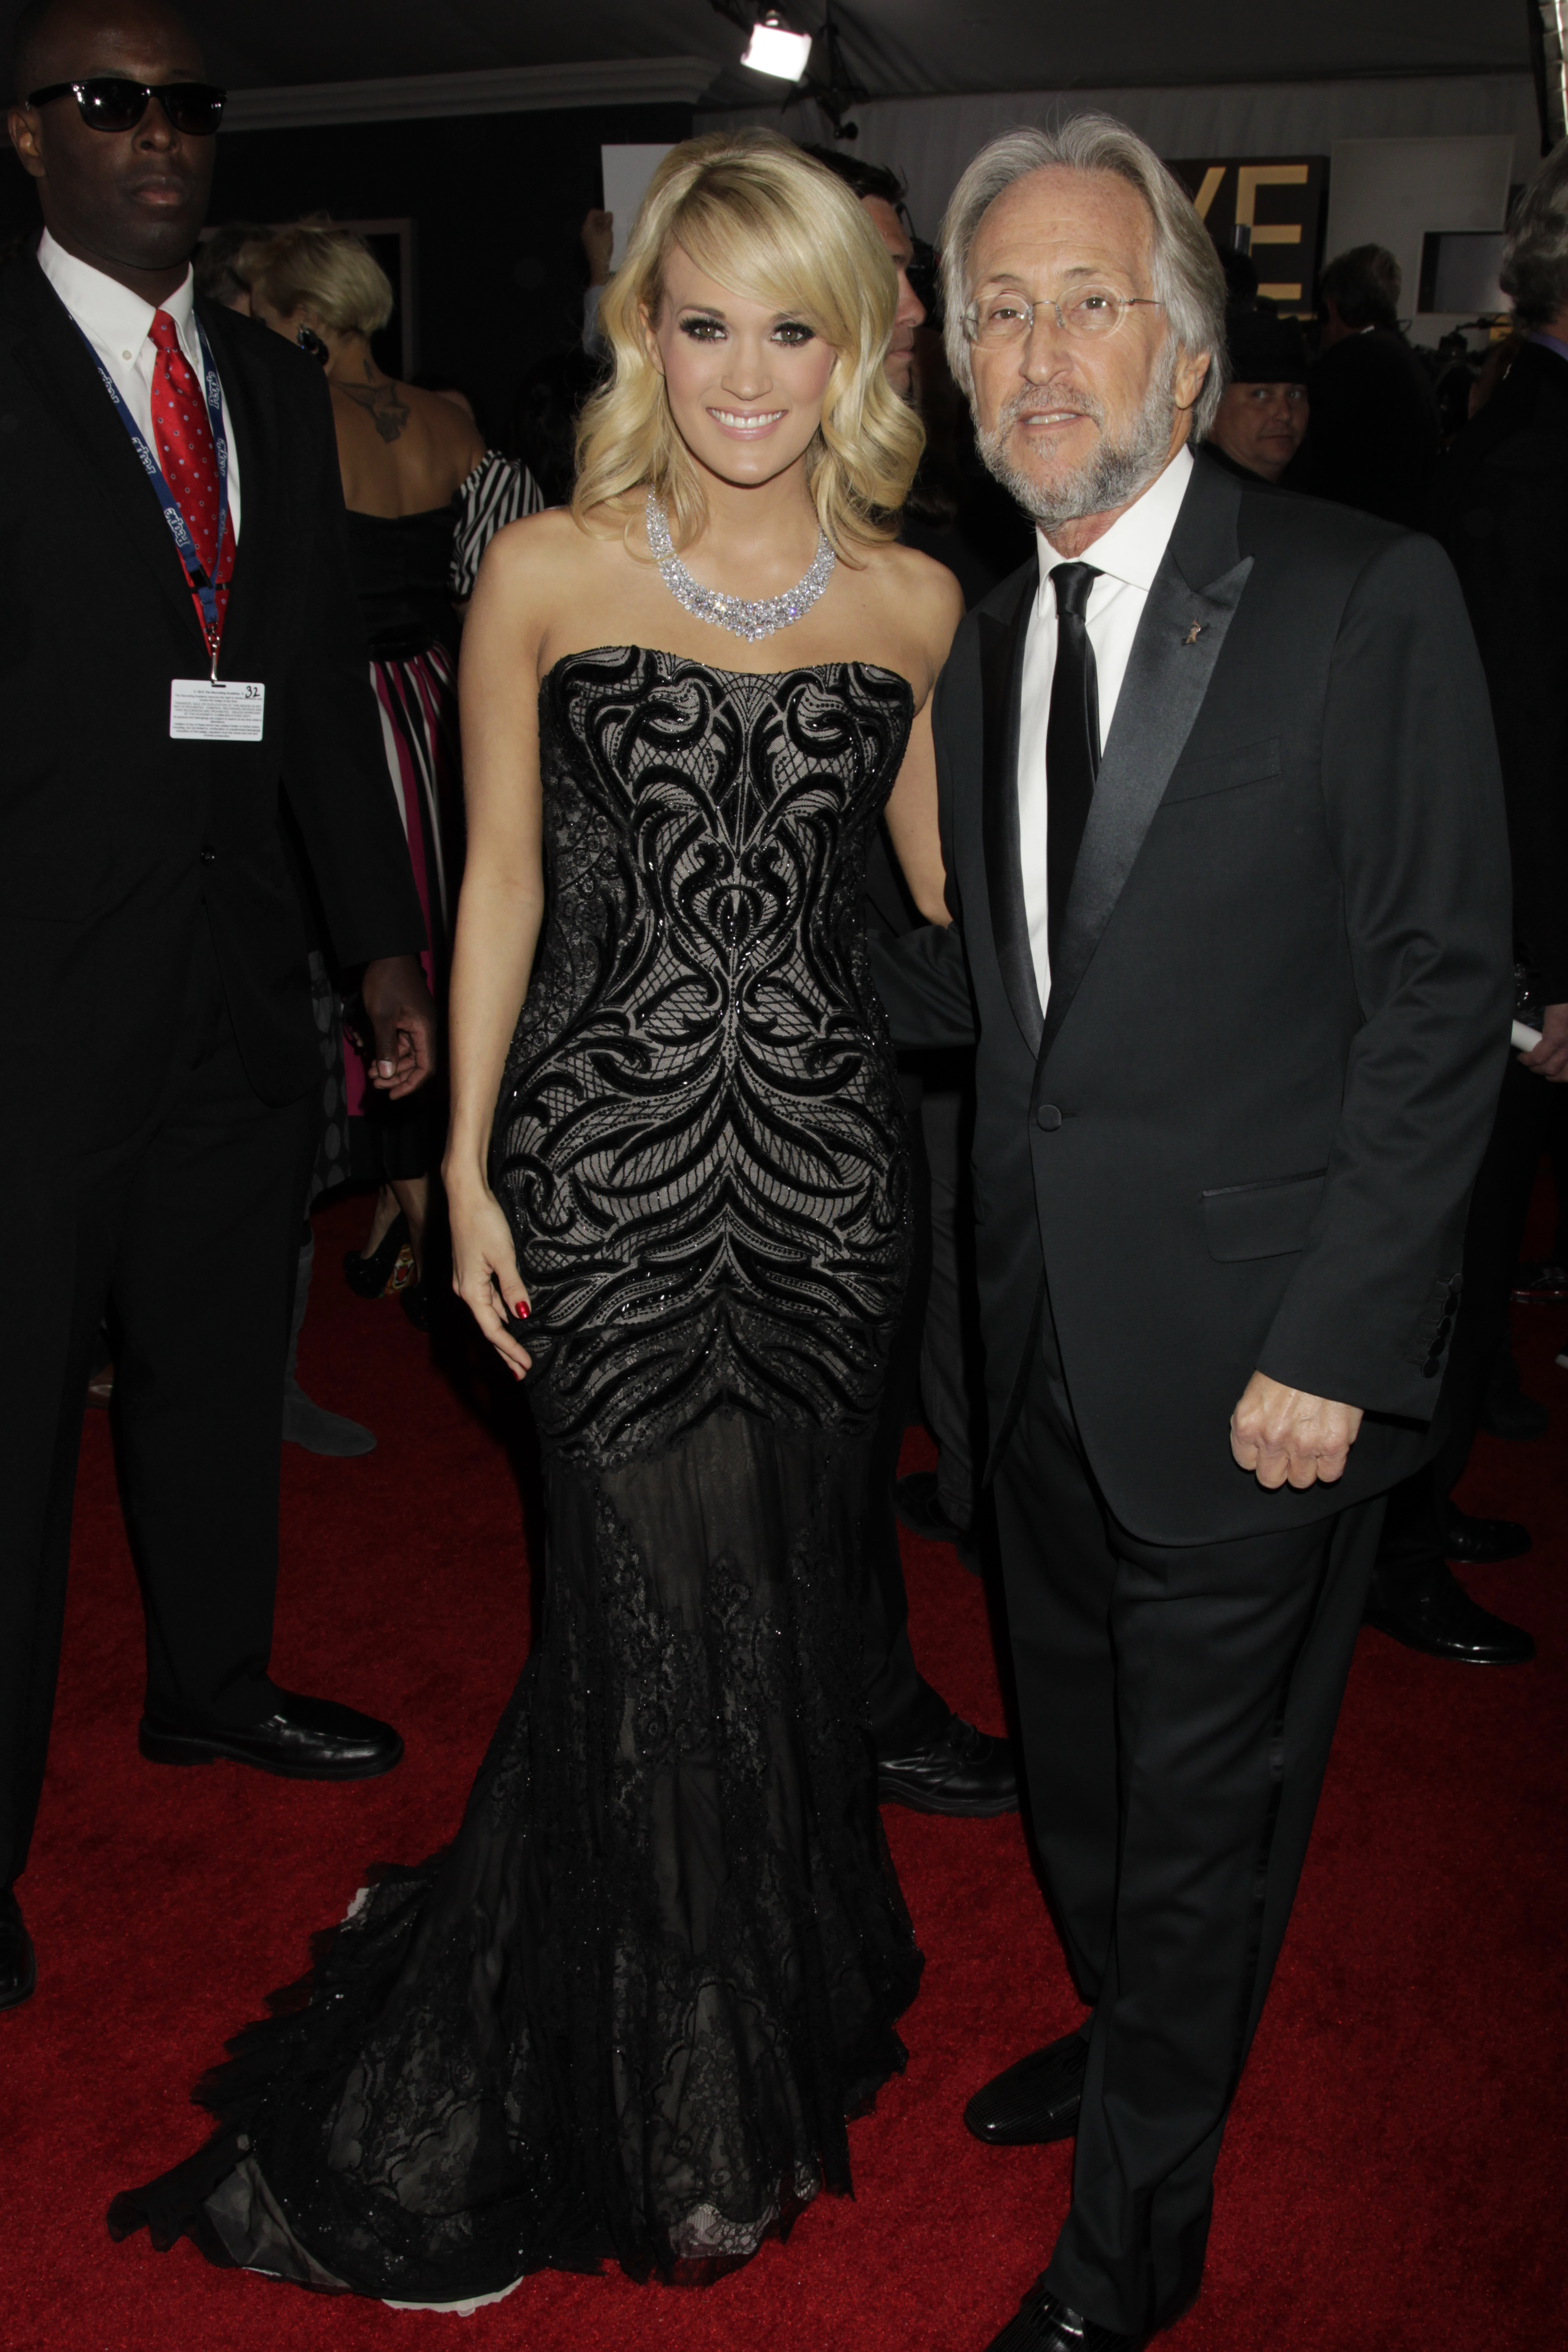 Carrie Underwood and Neil Portnow